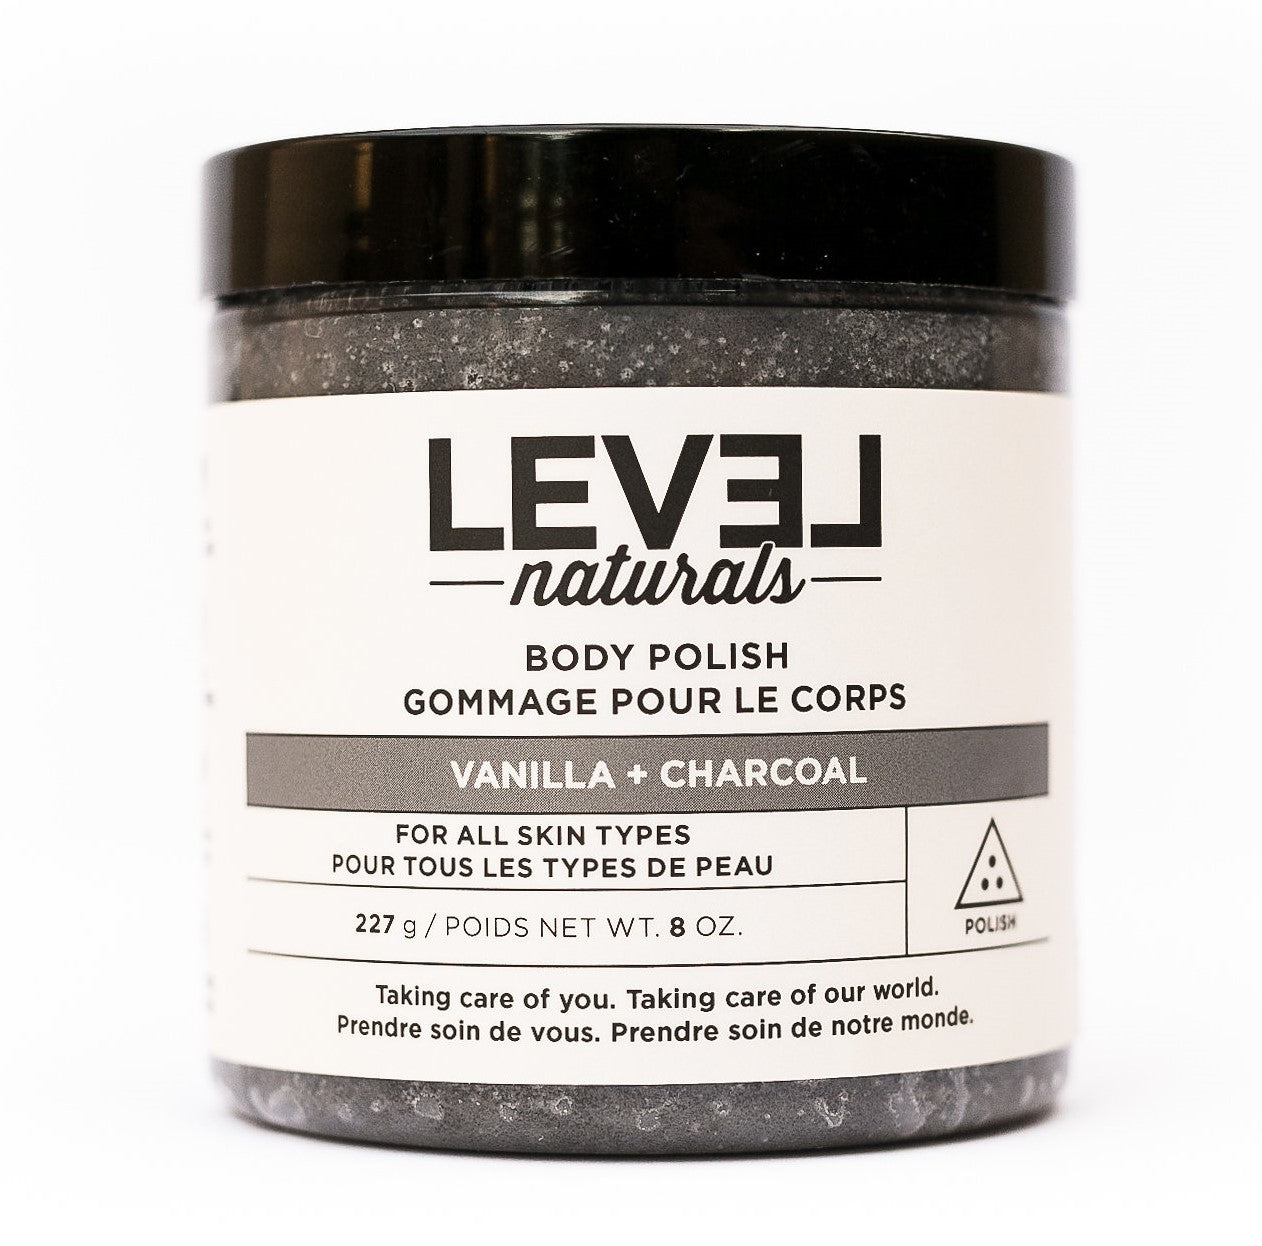 Vanilla + Charcoal Body Polish